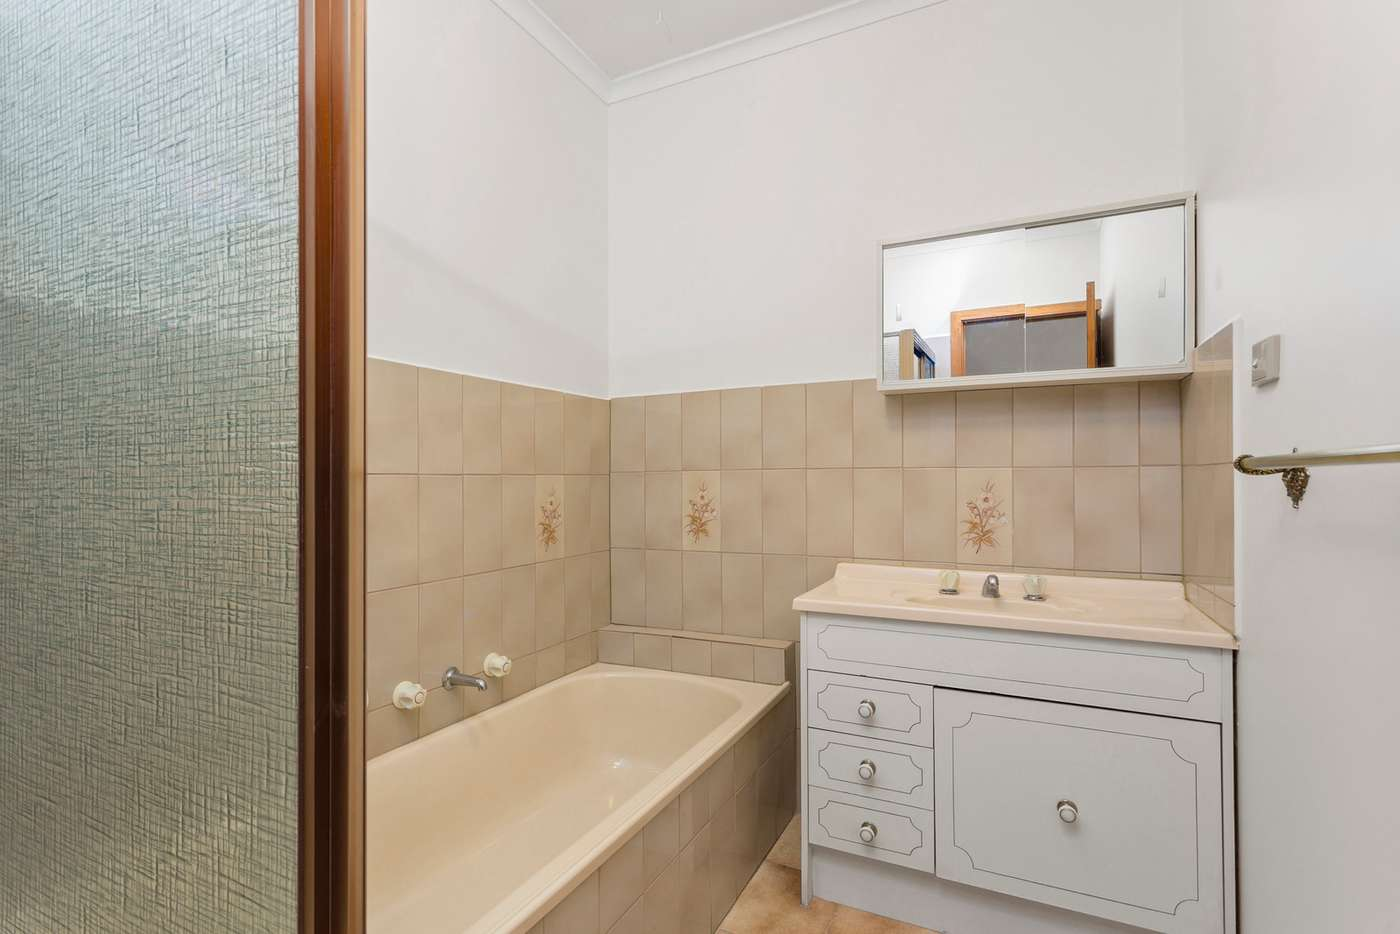 Fifth view of Homely house listing, 1/4 Snow Gum Court, Mulgrave VIC 3170